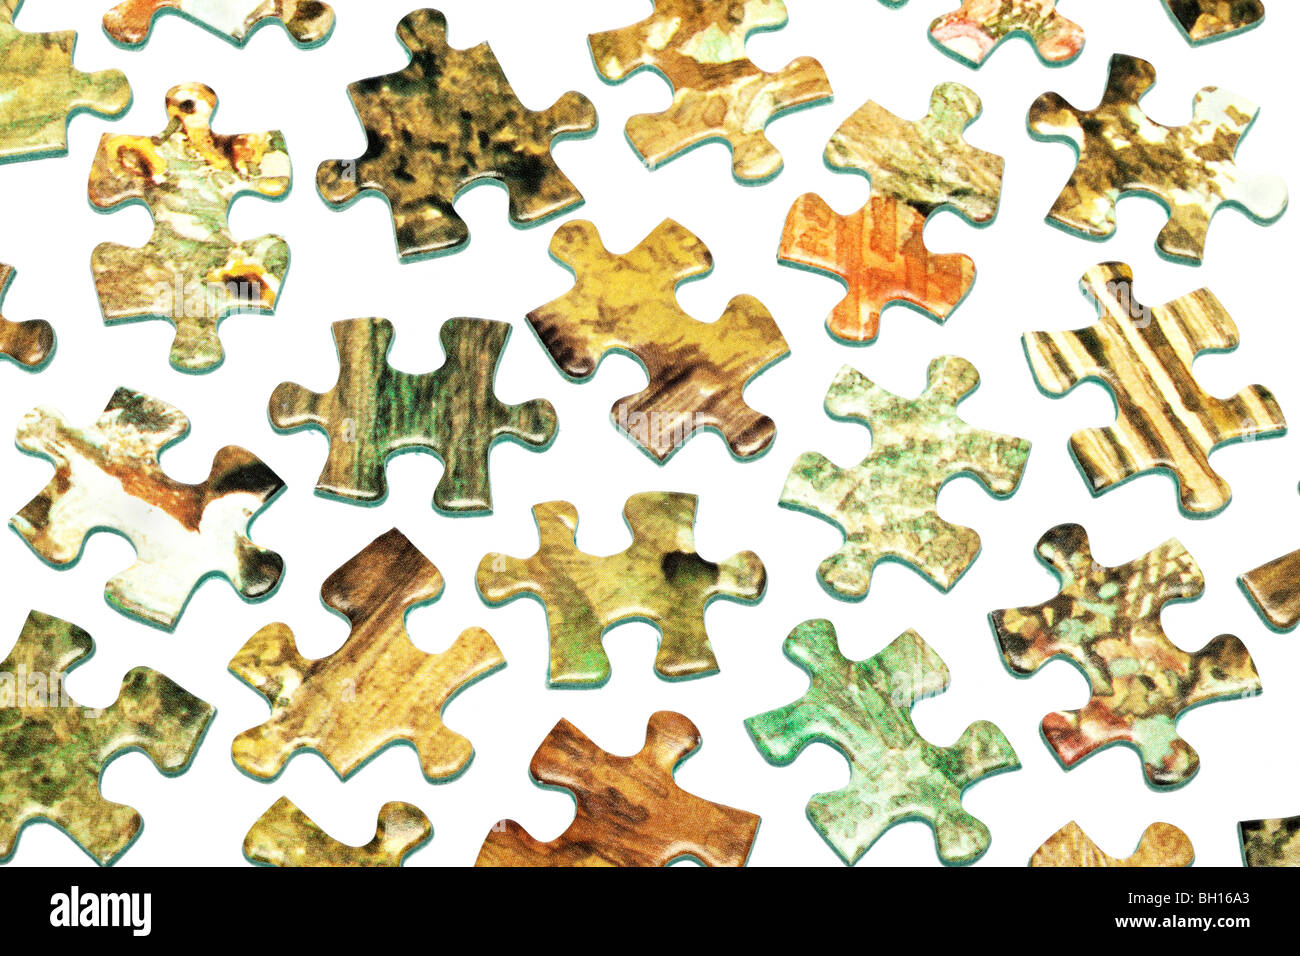 Jigsaw pieces - Stock Image